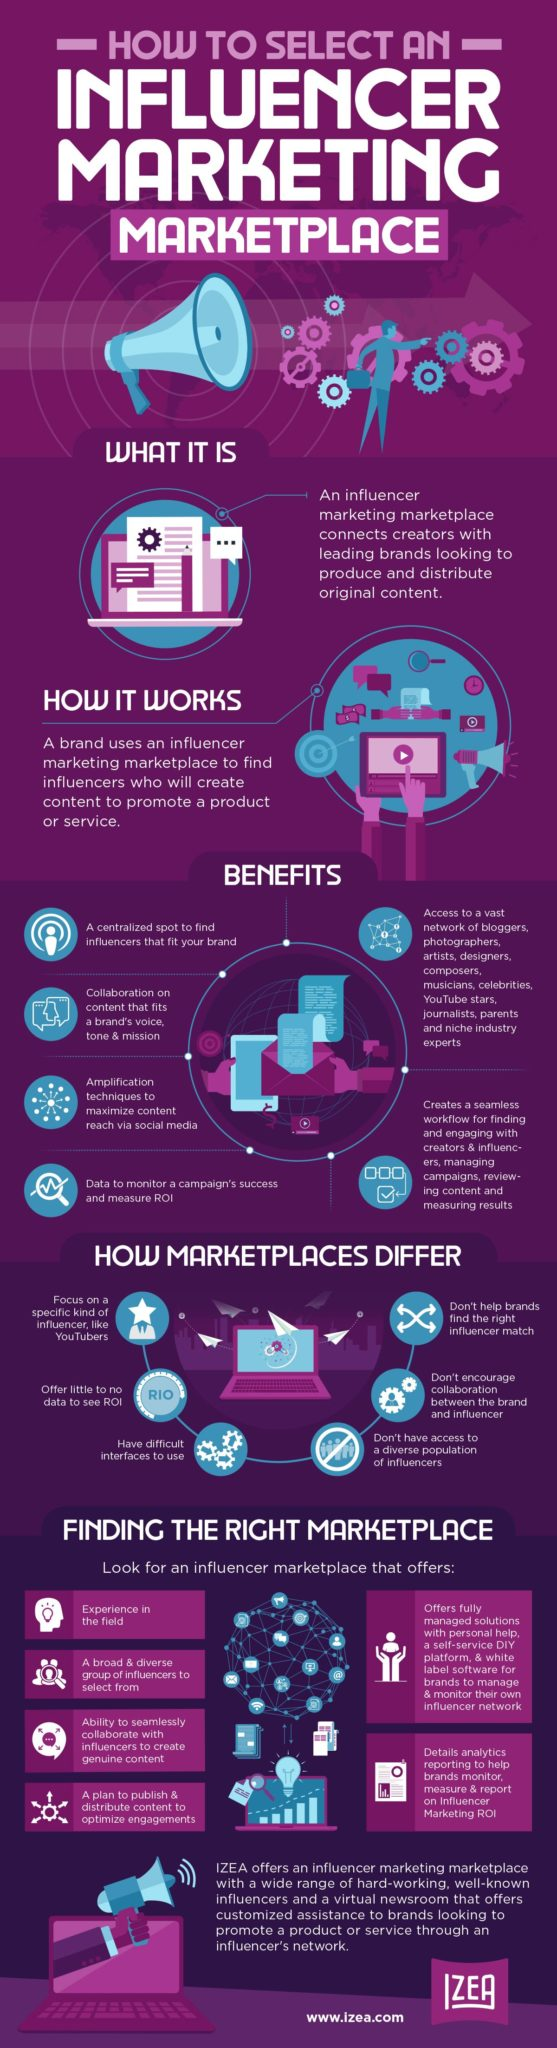 How to select an influencer marketplace